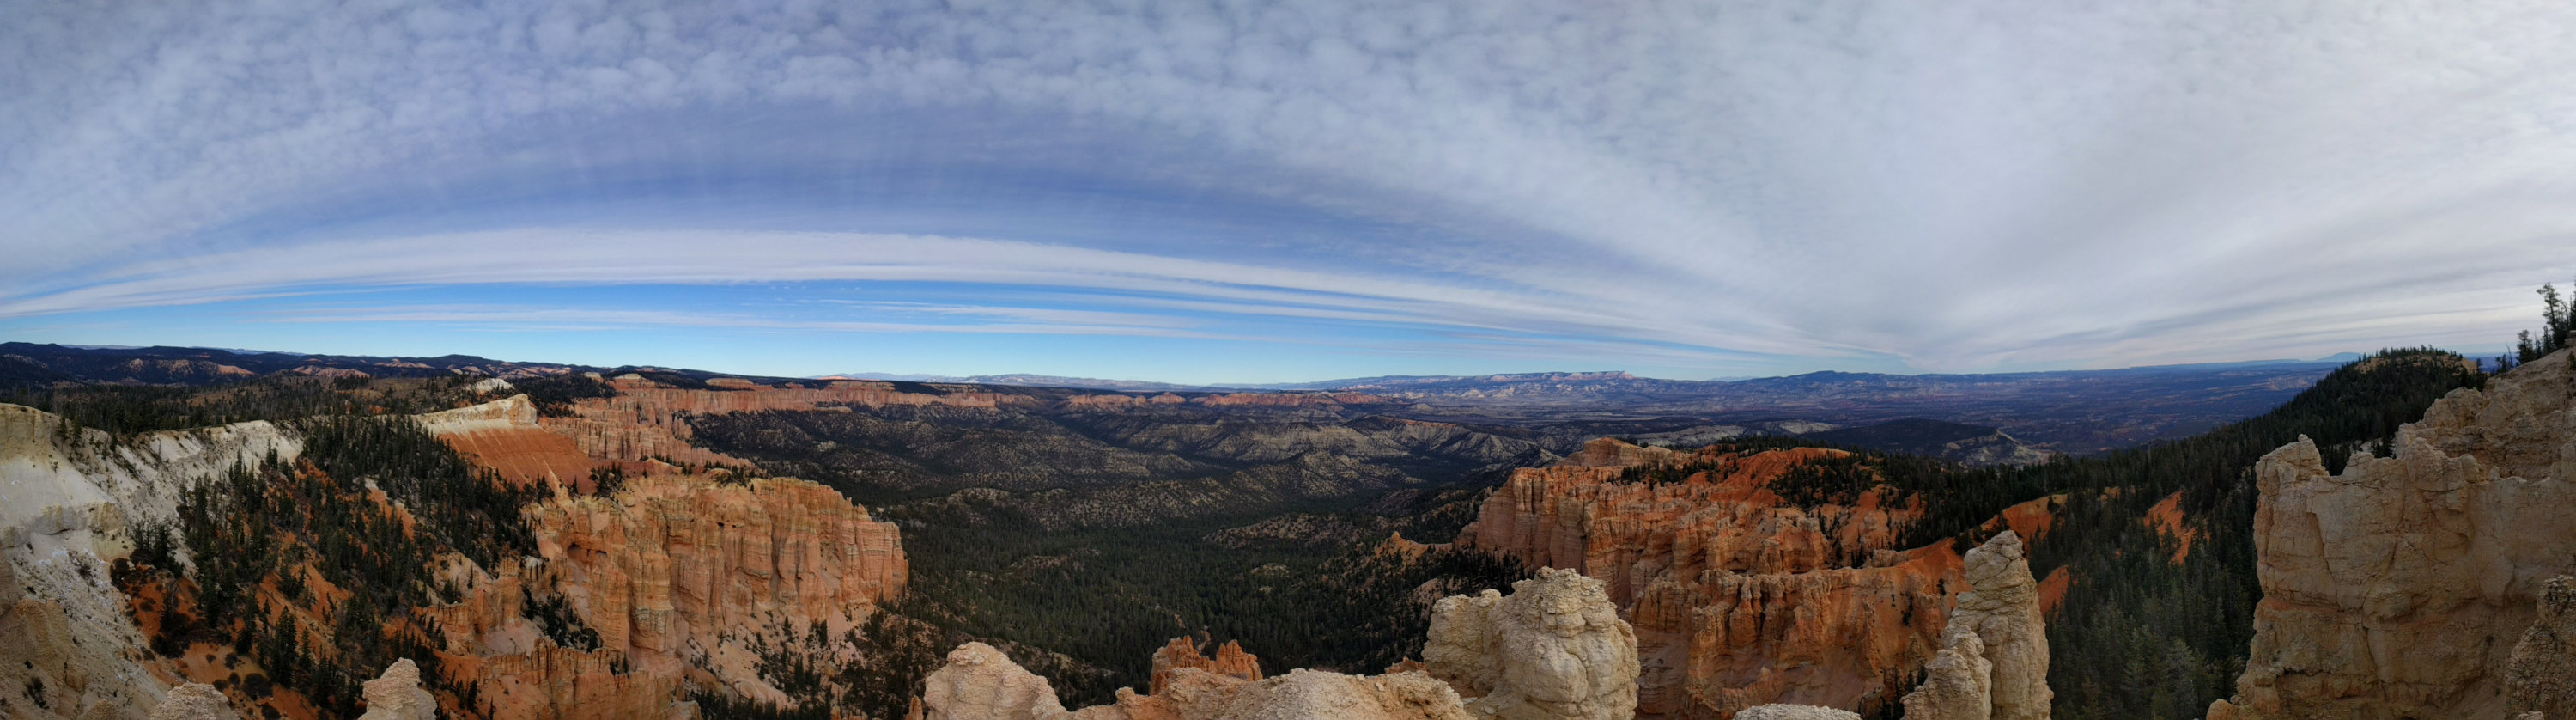 More Bryce